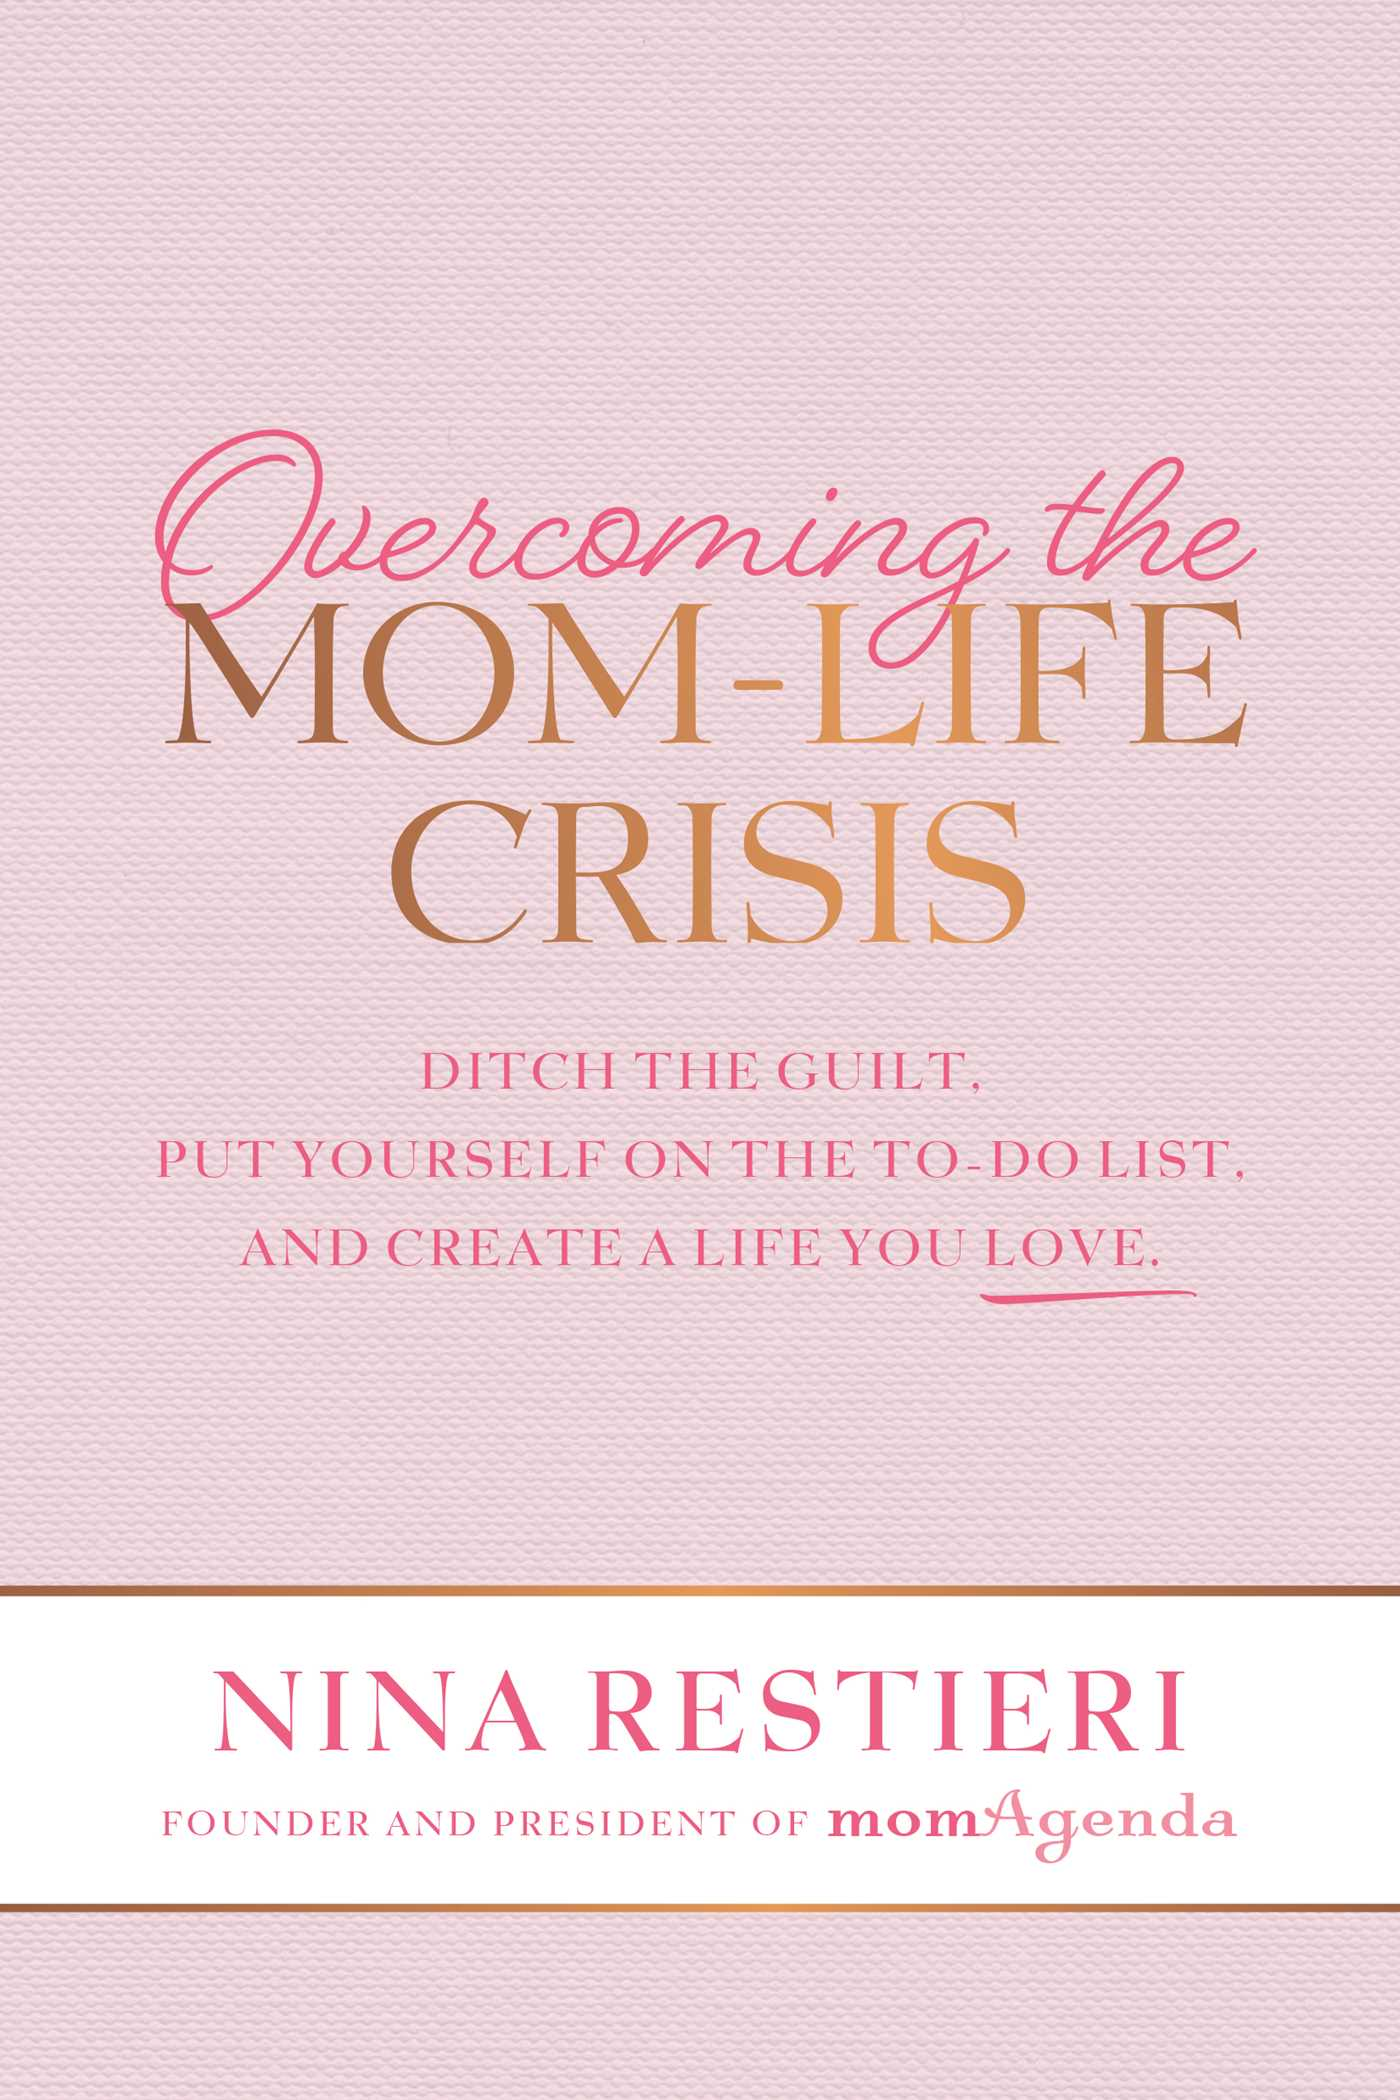 Overcoming the Mom-Life Crisis: Ditch the Guilt, Put Yourself on the To-Do List, and Create A Life You Love